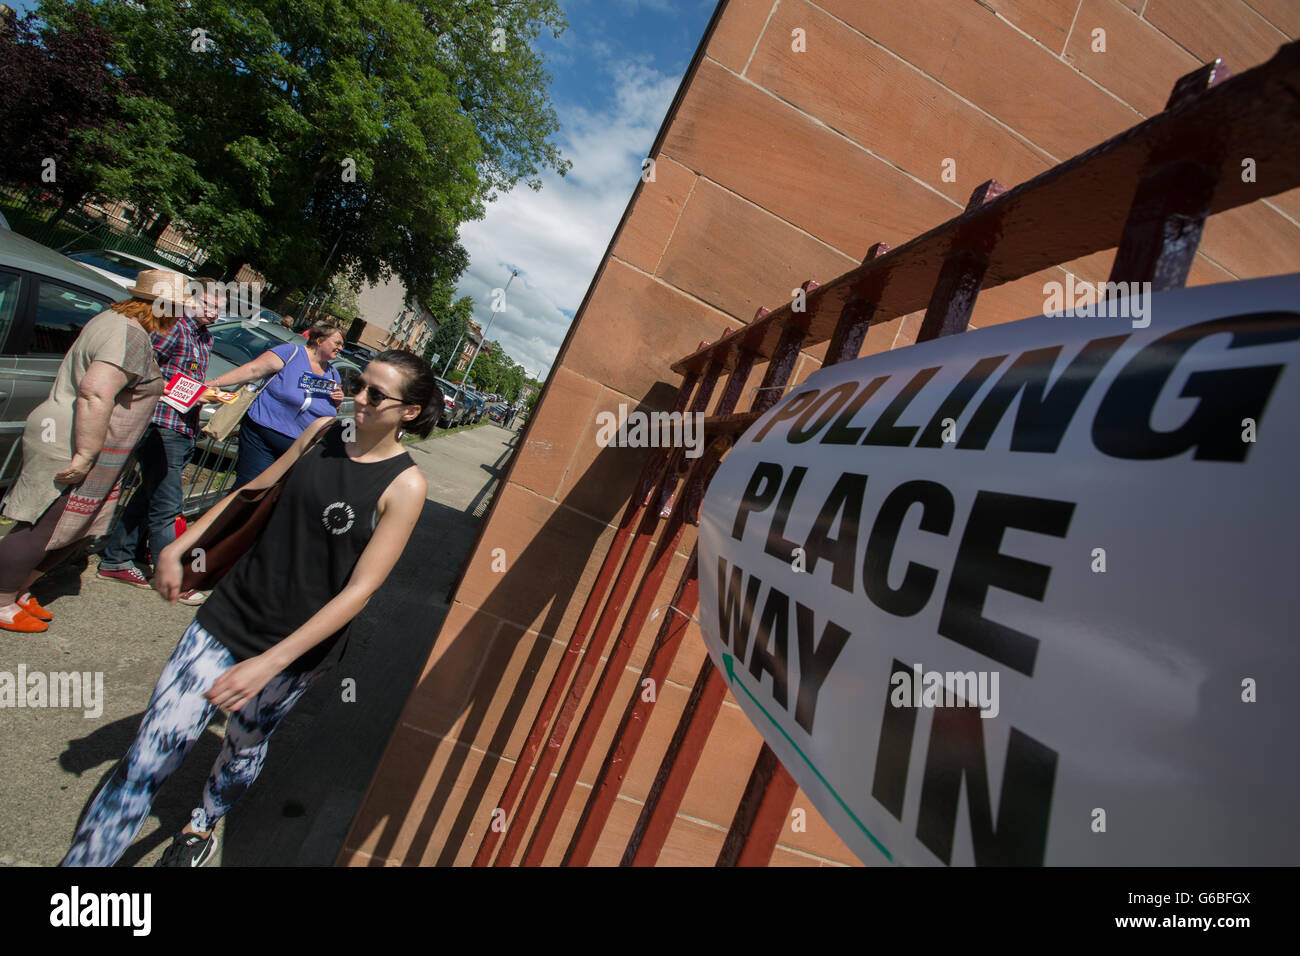 Glasgow, UK. 23rd June, 2016. 'Remain' campaigners stand distributing leaflets, as voting takes place on - Stock Image